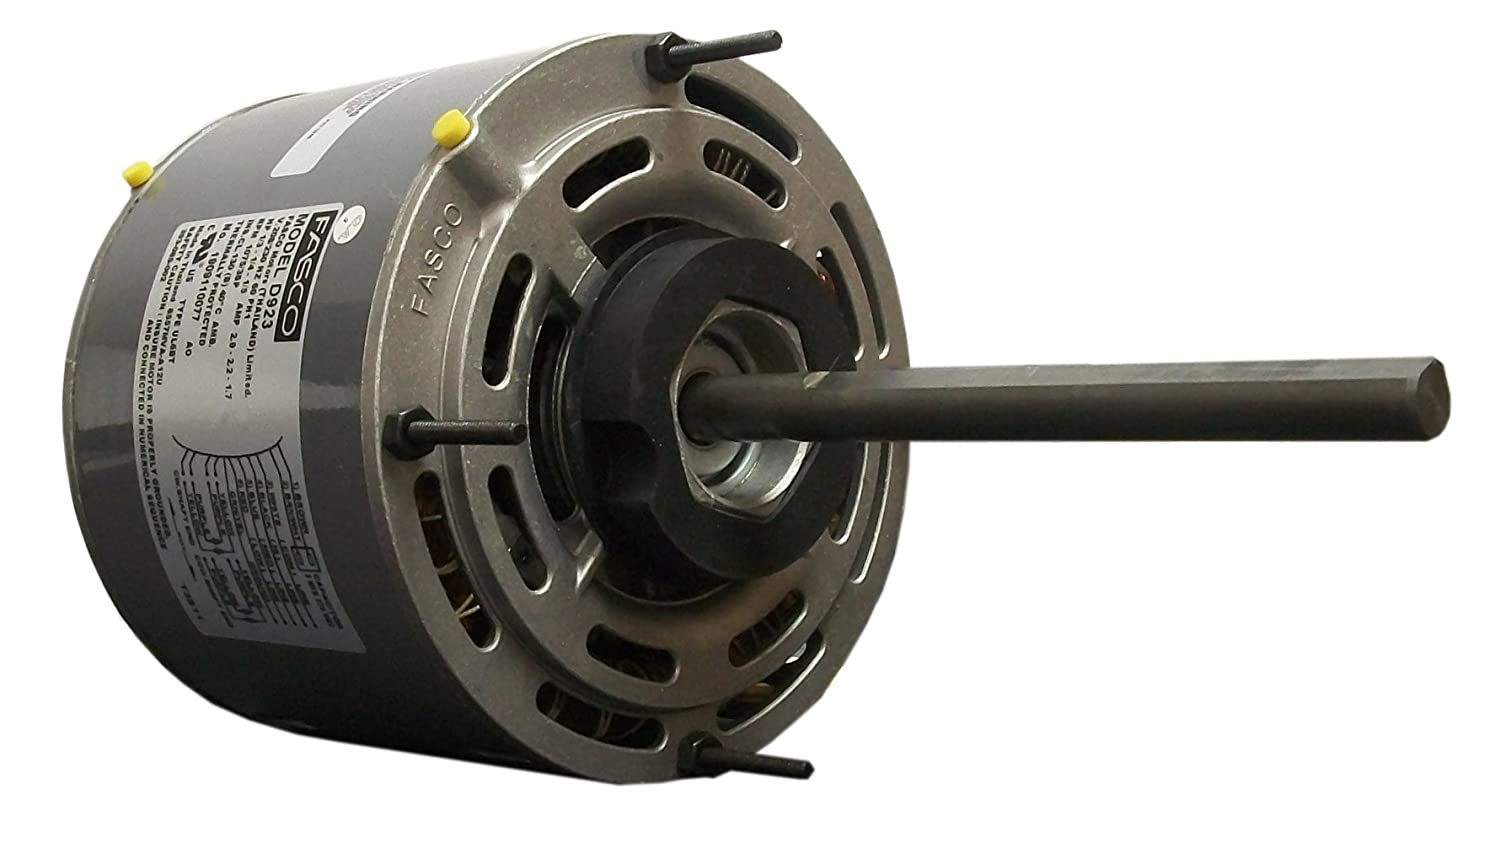 71yyyCTb6YL._SL1500_ fasco d923 5 6 inch direct drive blower motor, 1 3 hp, 208 230 fasco d923 wiring diagram at aneh.co